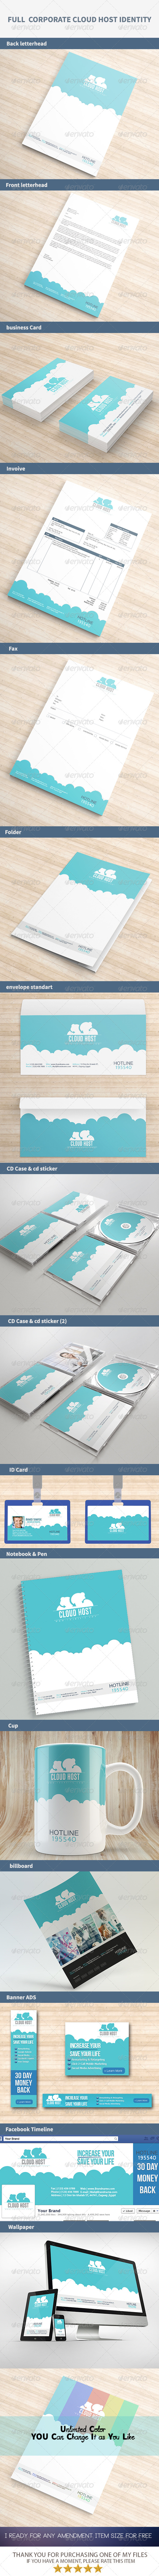 GraphicRiver Full Corporate Cloud Host Identity 7955469